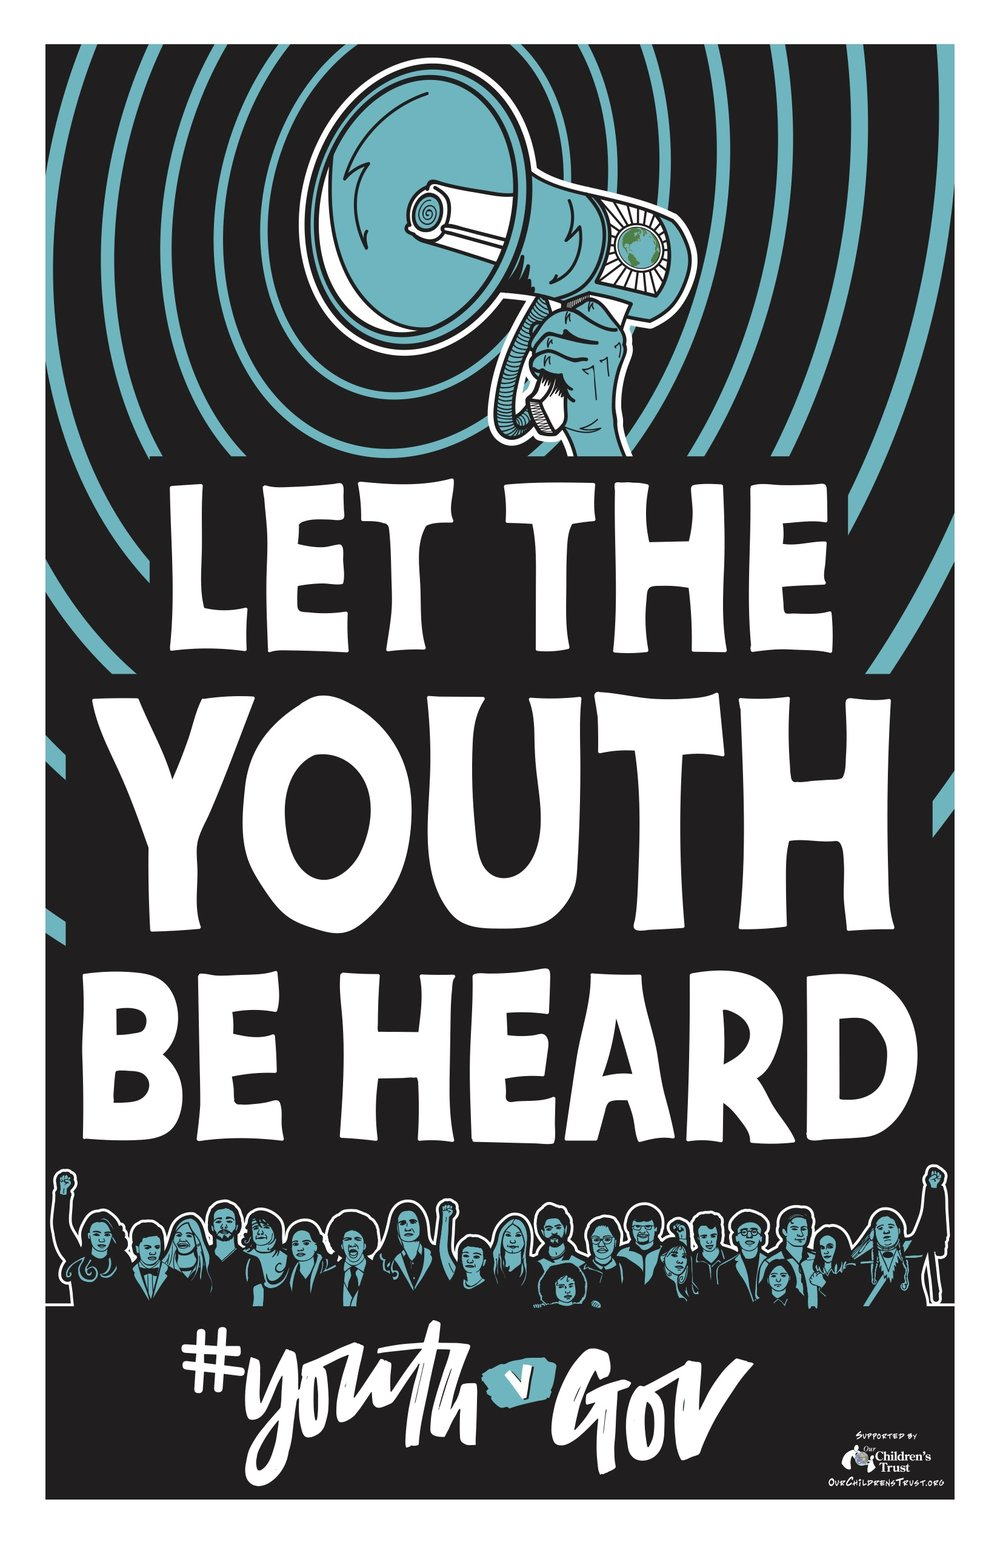 OCT_YouthVGov_YouthBeHeard_final copy.jpg